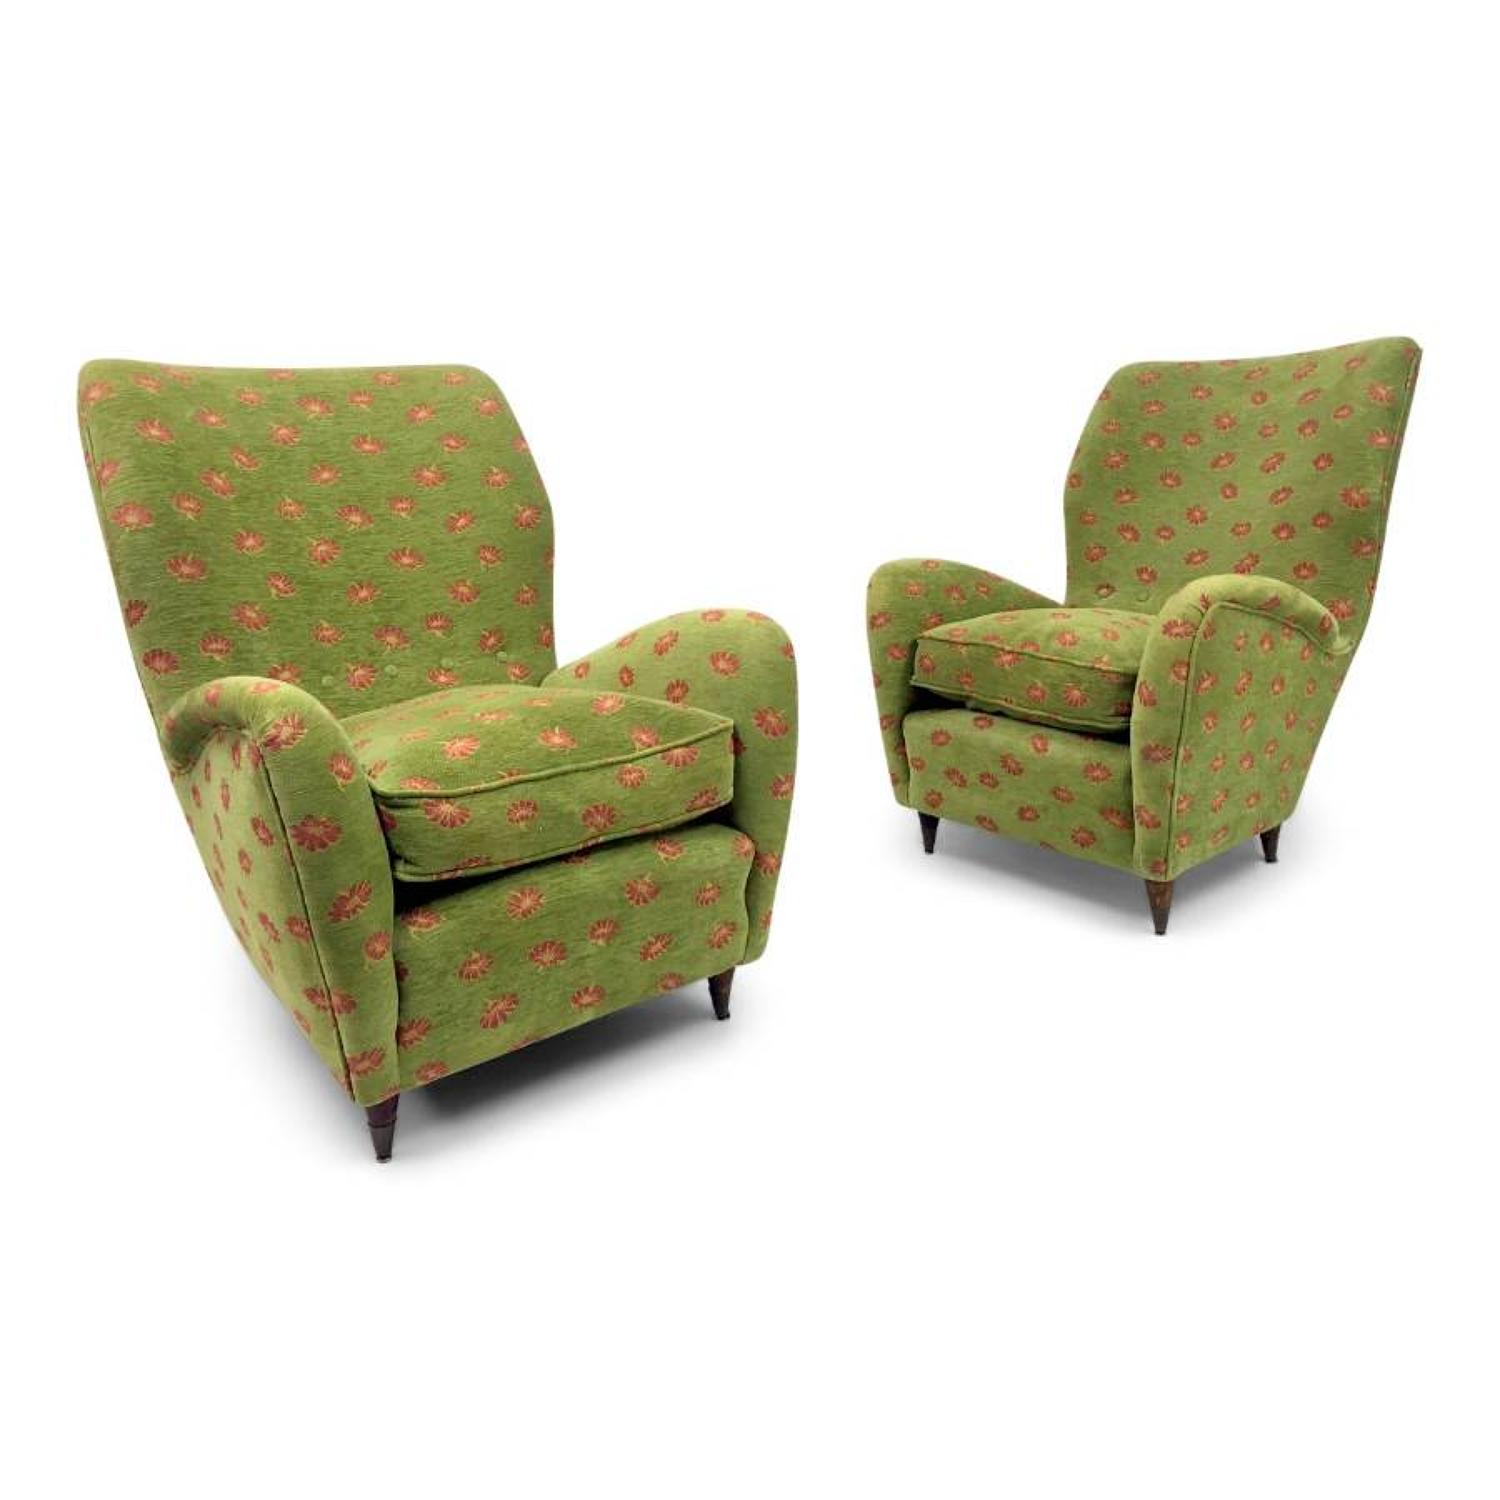 Pair of 1950s Italian armchairs with conical legs